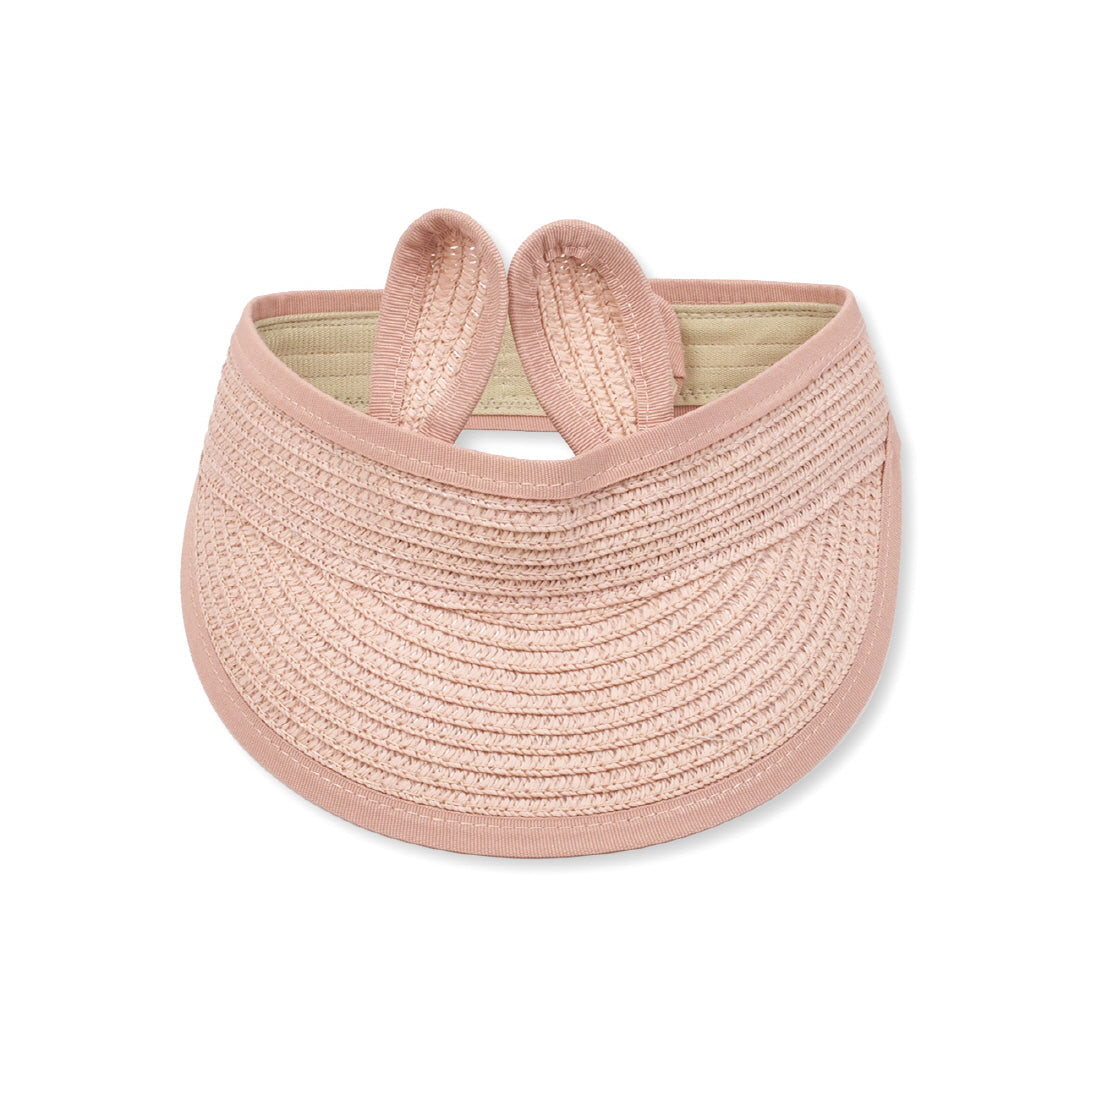 Packable Straw Sun Visor, pink